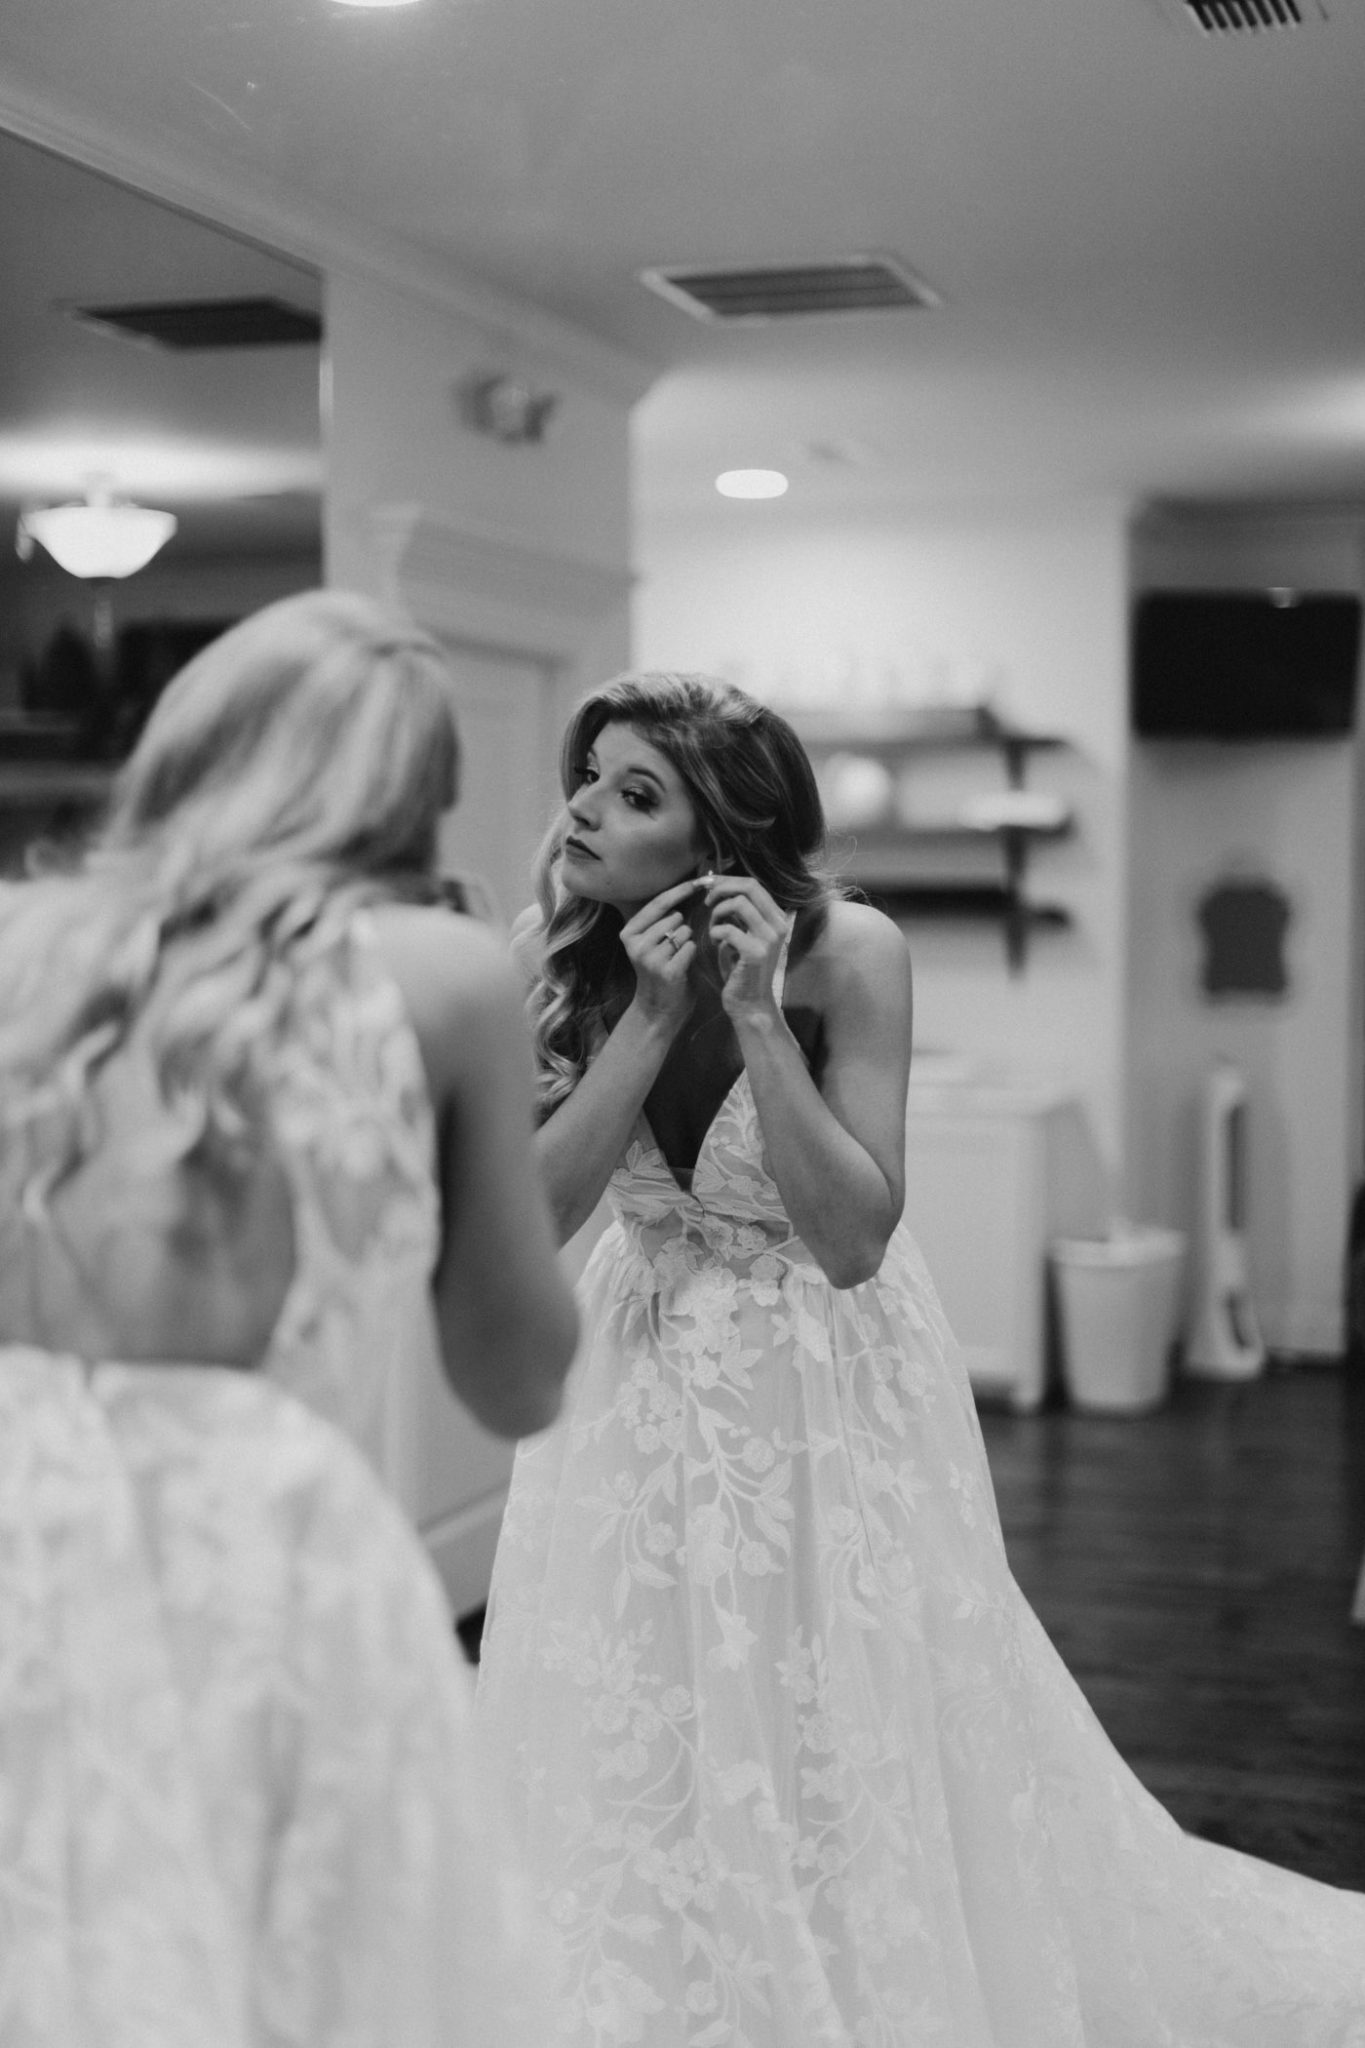 bride putting on earrings while getting ready to walk down the aisle